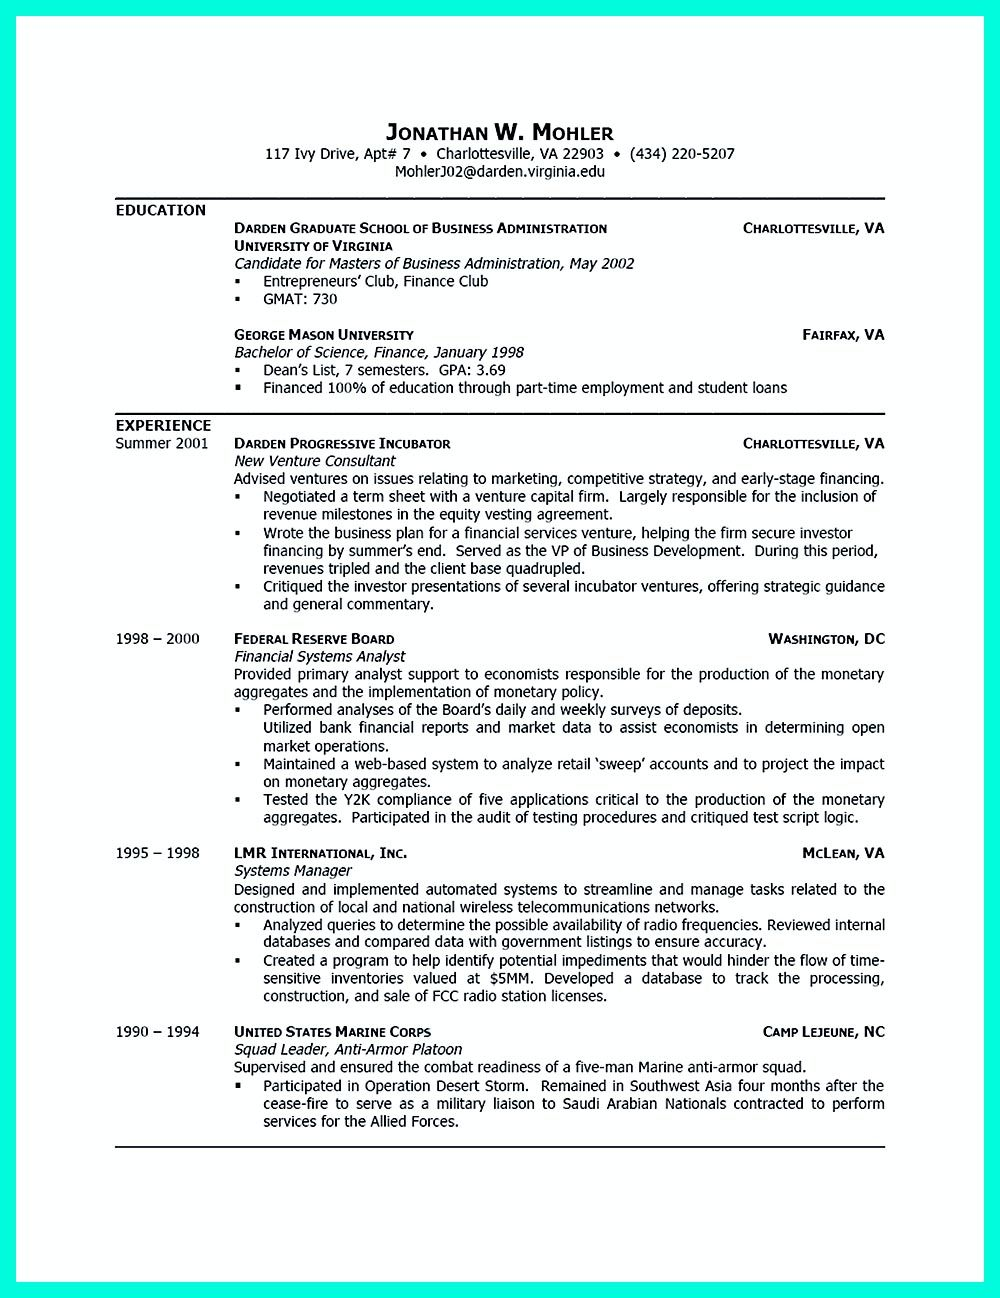 How To Write A Resume After Graduating Graduate School  How To Make A Resume For College